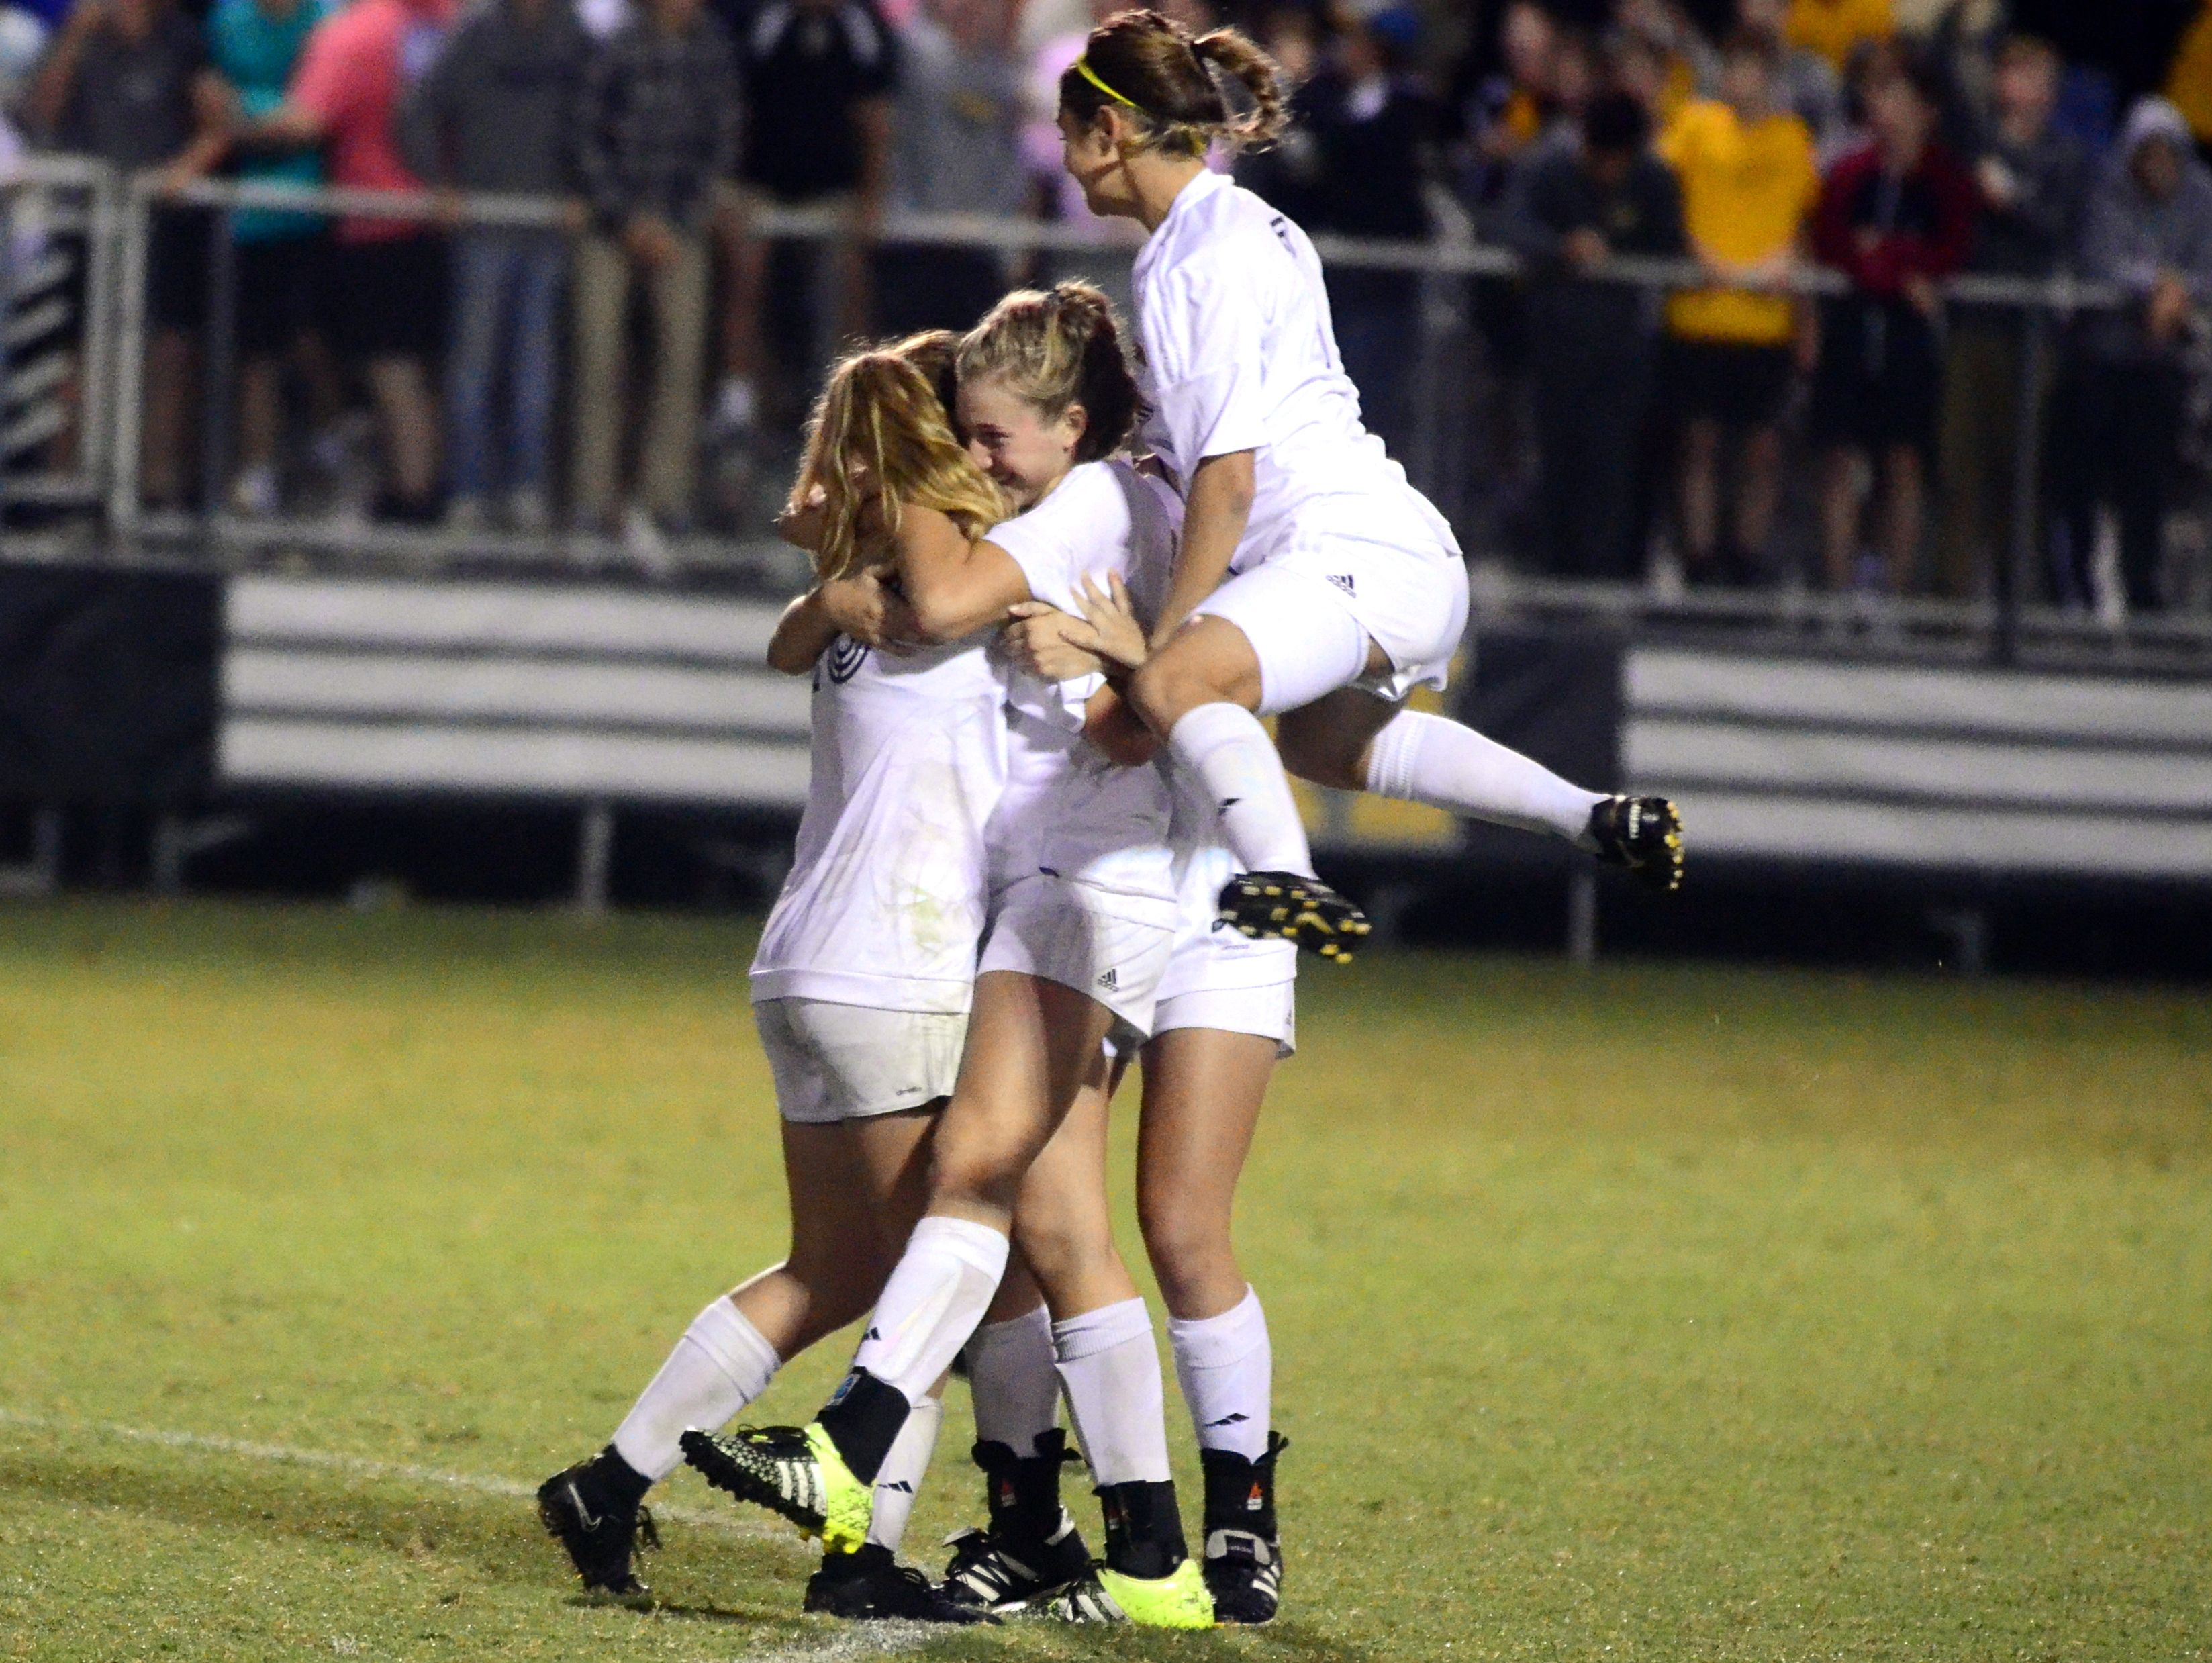 Hendersonville players celebrate after winning the District 9-AAA Tournament championship match on Wednesday evening.